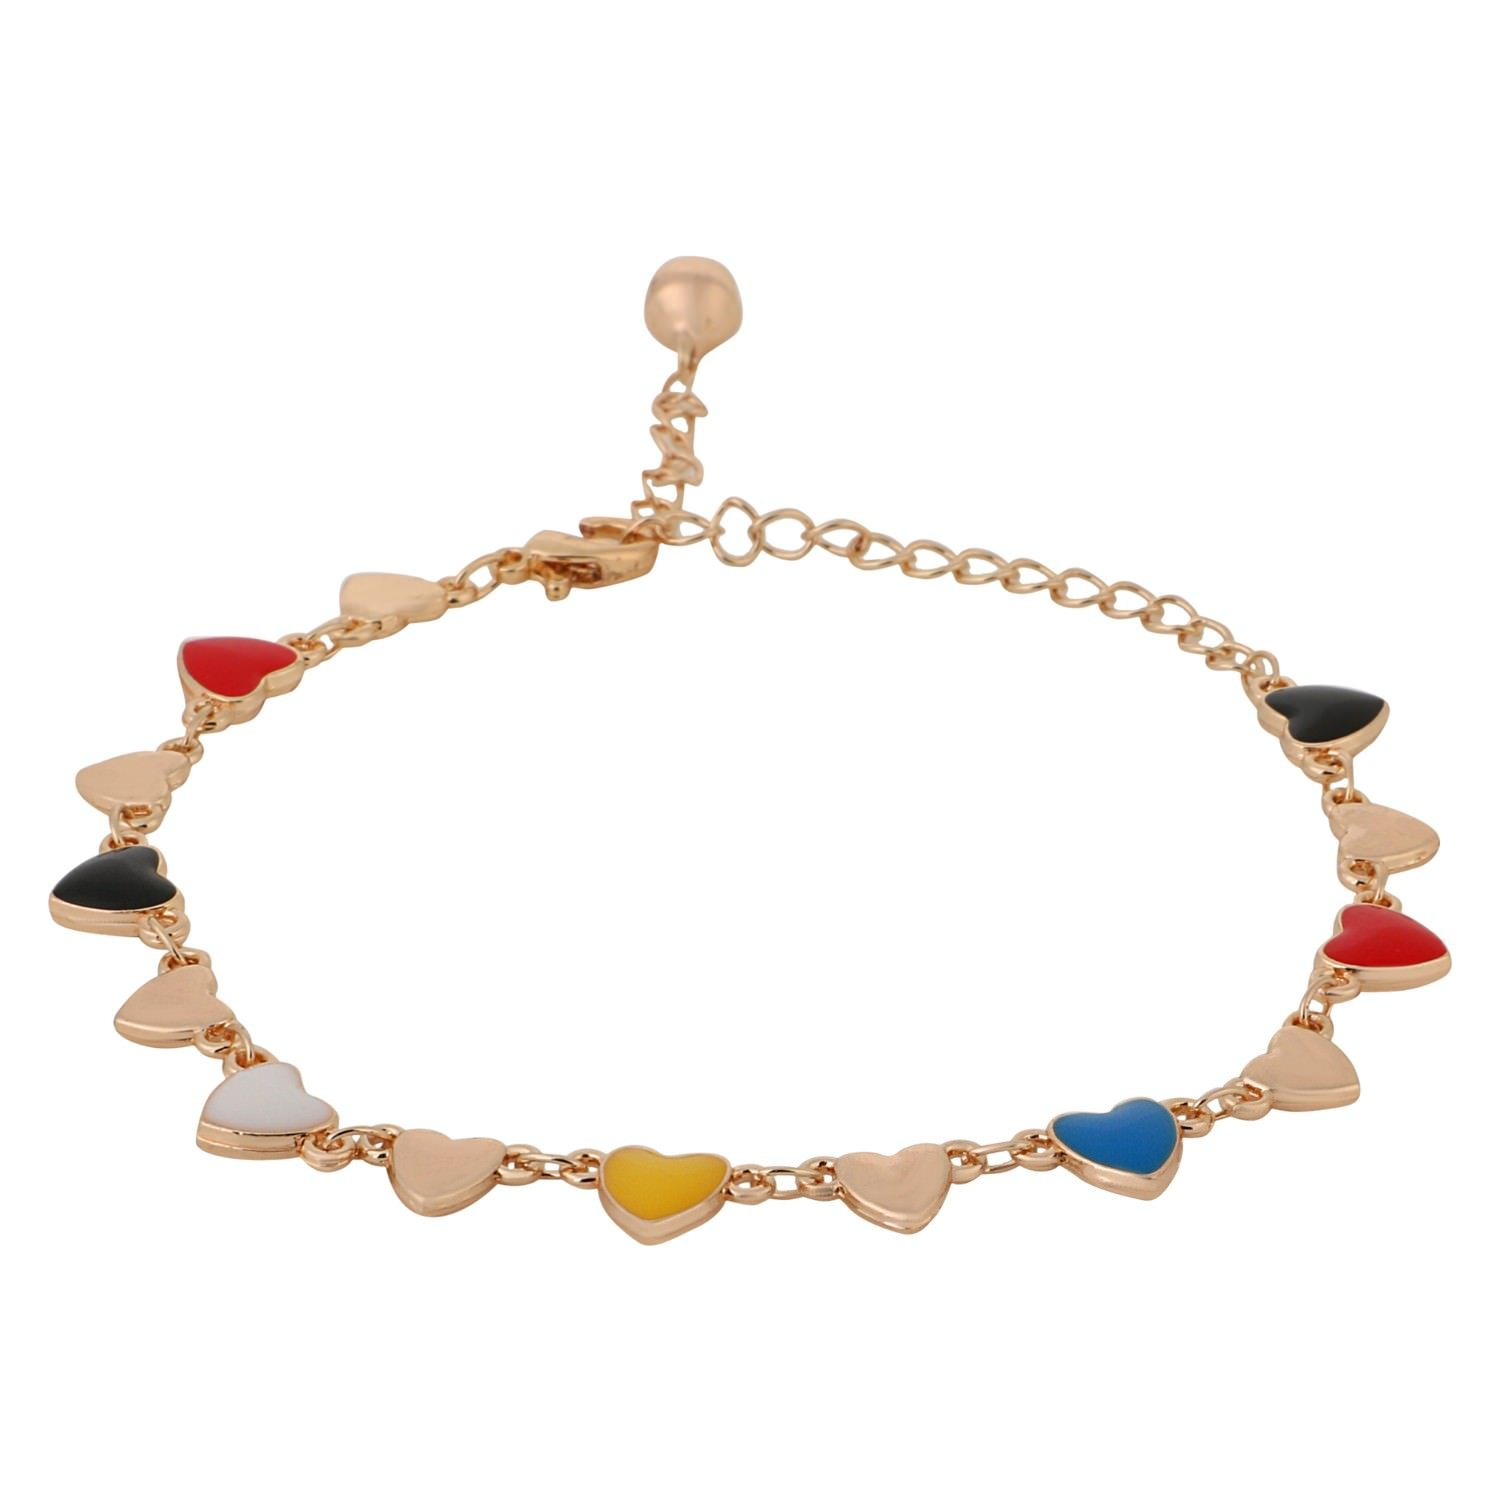 Efulgenz Multi Color Gold Tone Enamel Hearts Chain Link Charm Bracelet for Women and Girls with an extender.